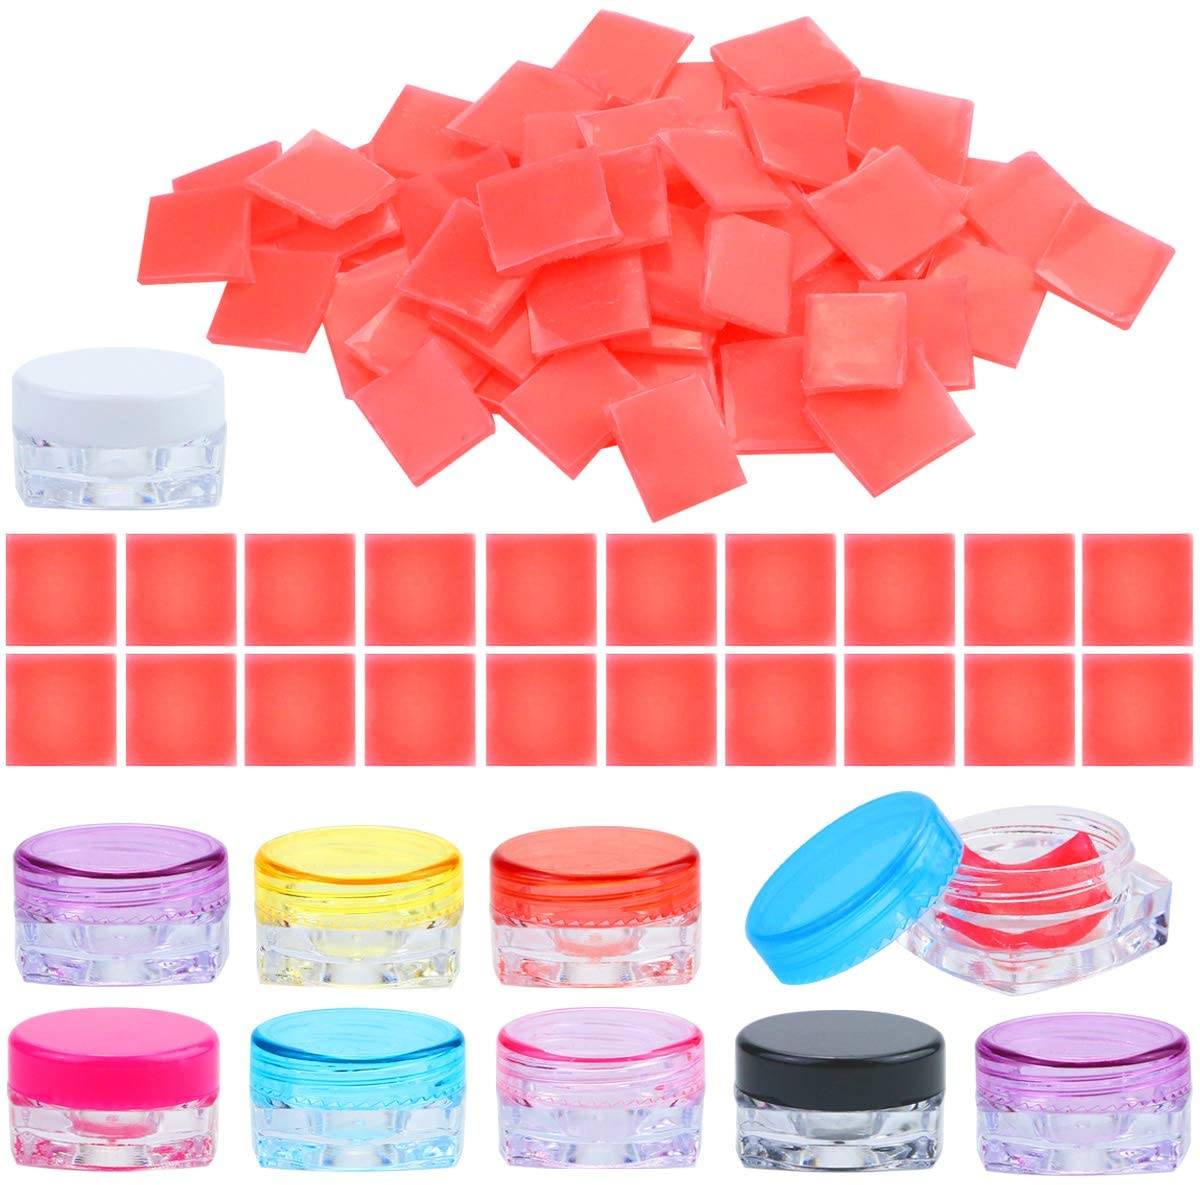 Wpxmer 100 Pieces DIY Diamond Painting Glue Clay Square, Diamond Painting Wax and 20 Pack Diamond Painting Storage Case for Diamond Painting Embroidery Accessories Supplies